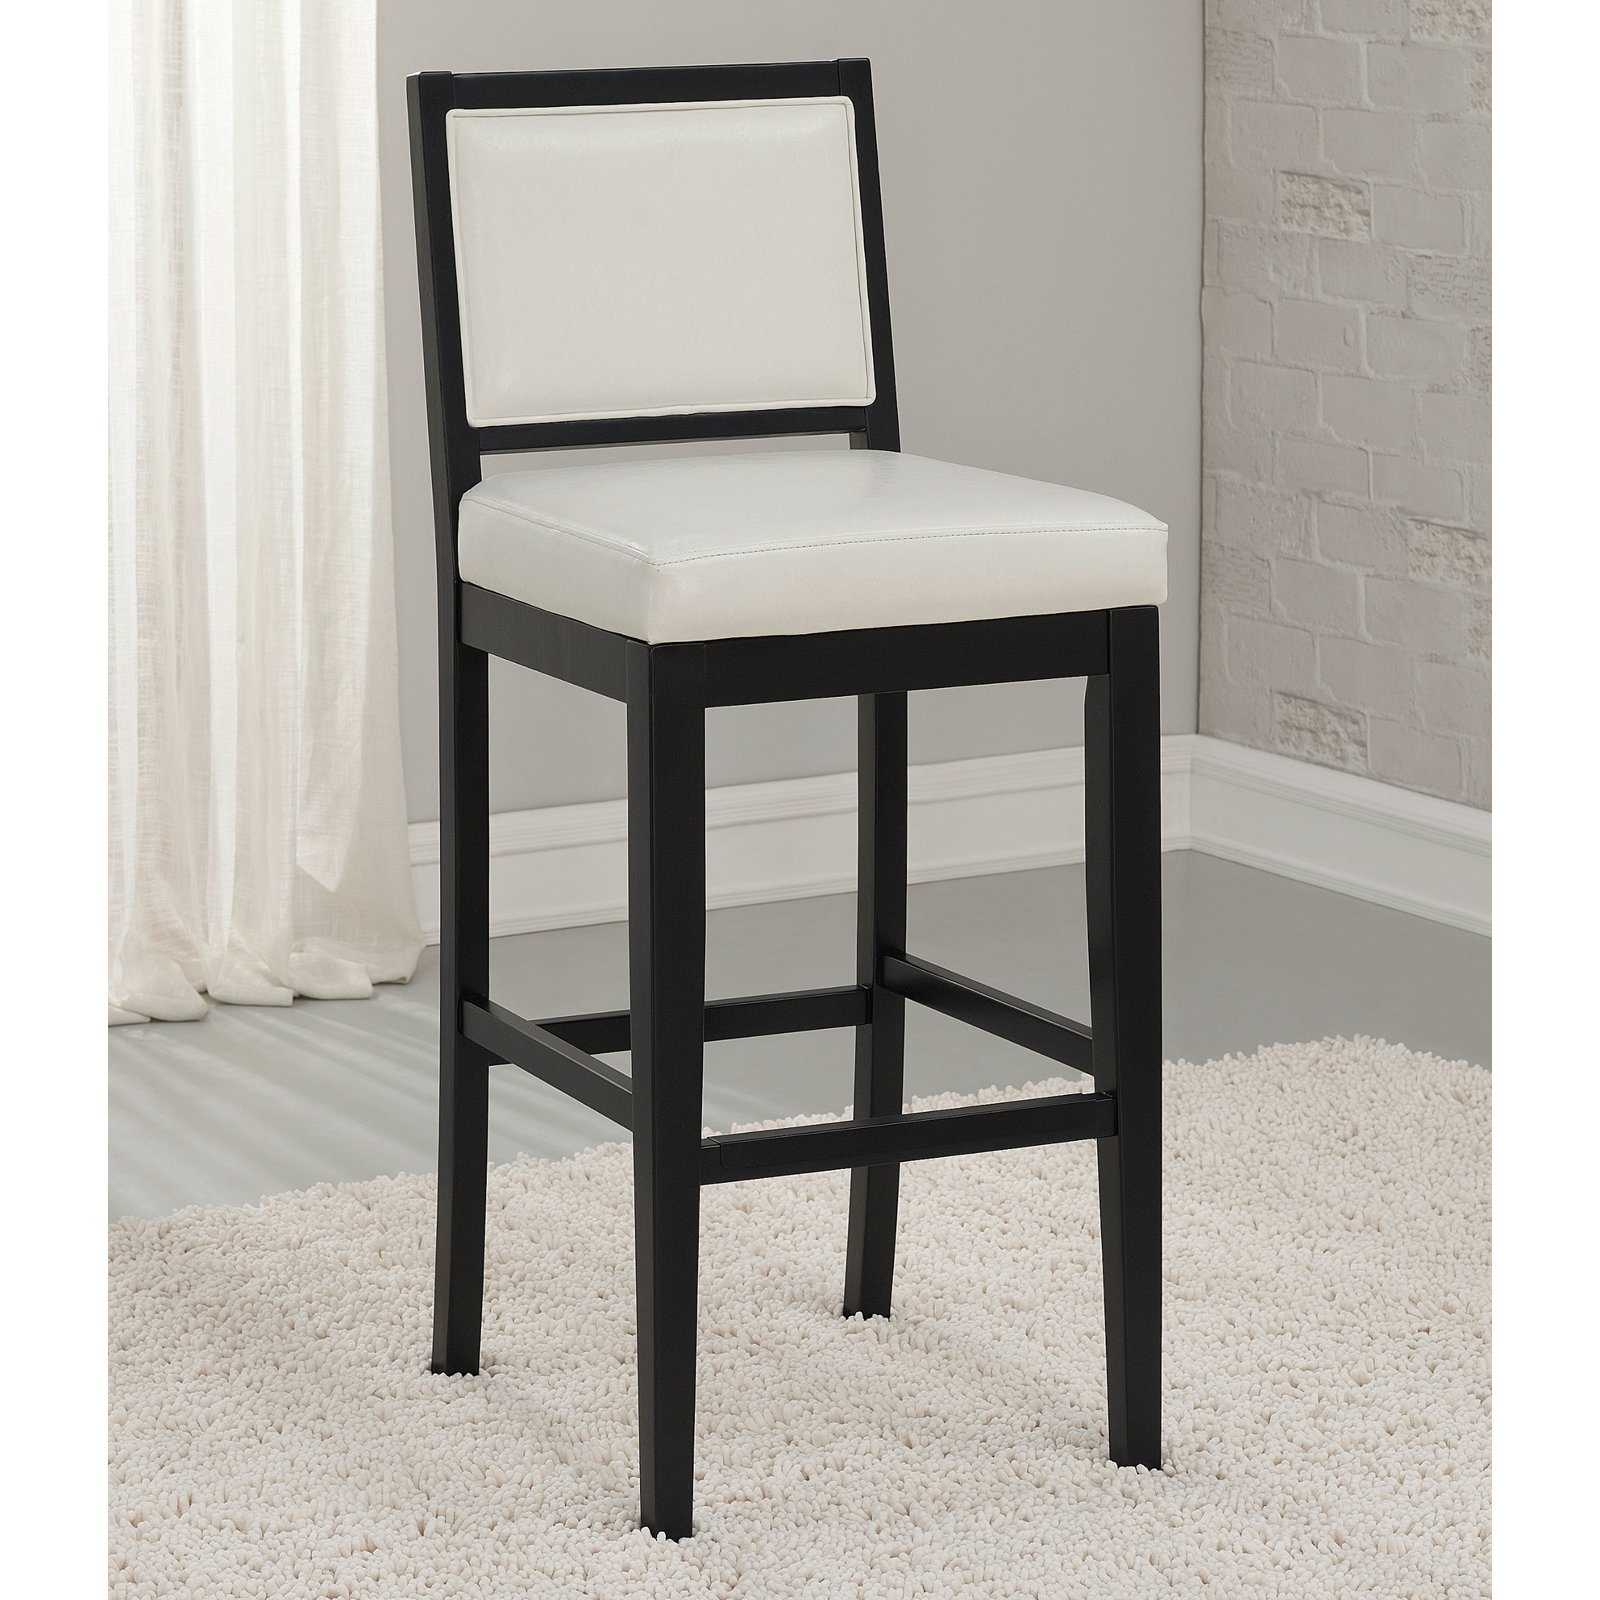 AHB Fairmount Counter Stool by American Heritage Billiards